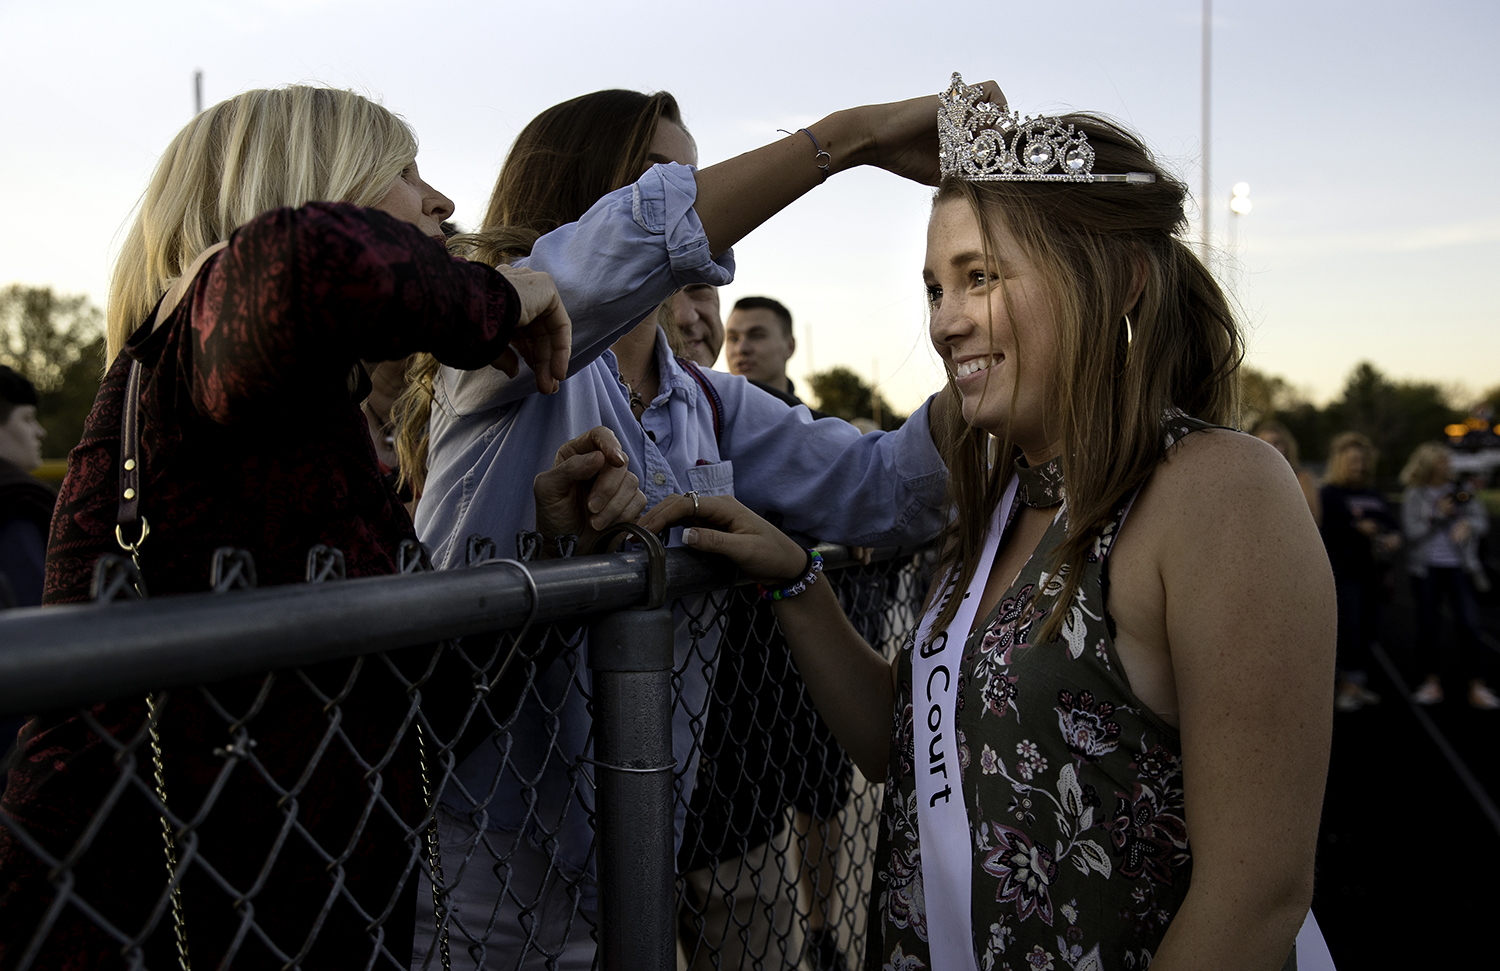 Kathryn Mayes adjusts her sister Julia's homecoming queen crown before kickoff at Rochester High School  Sept. 29. Kathleen Hayes, Julia's grandmother, is at left. Ted Schurter/The State Journal-Register